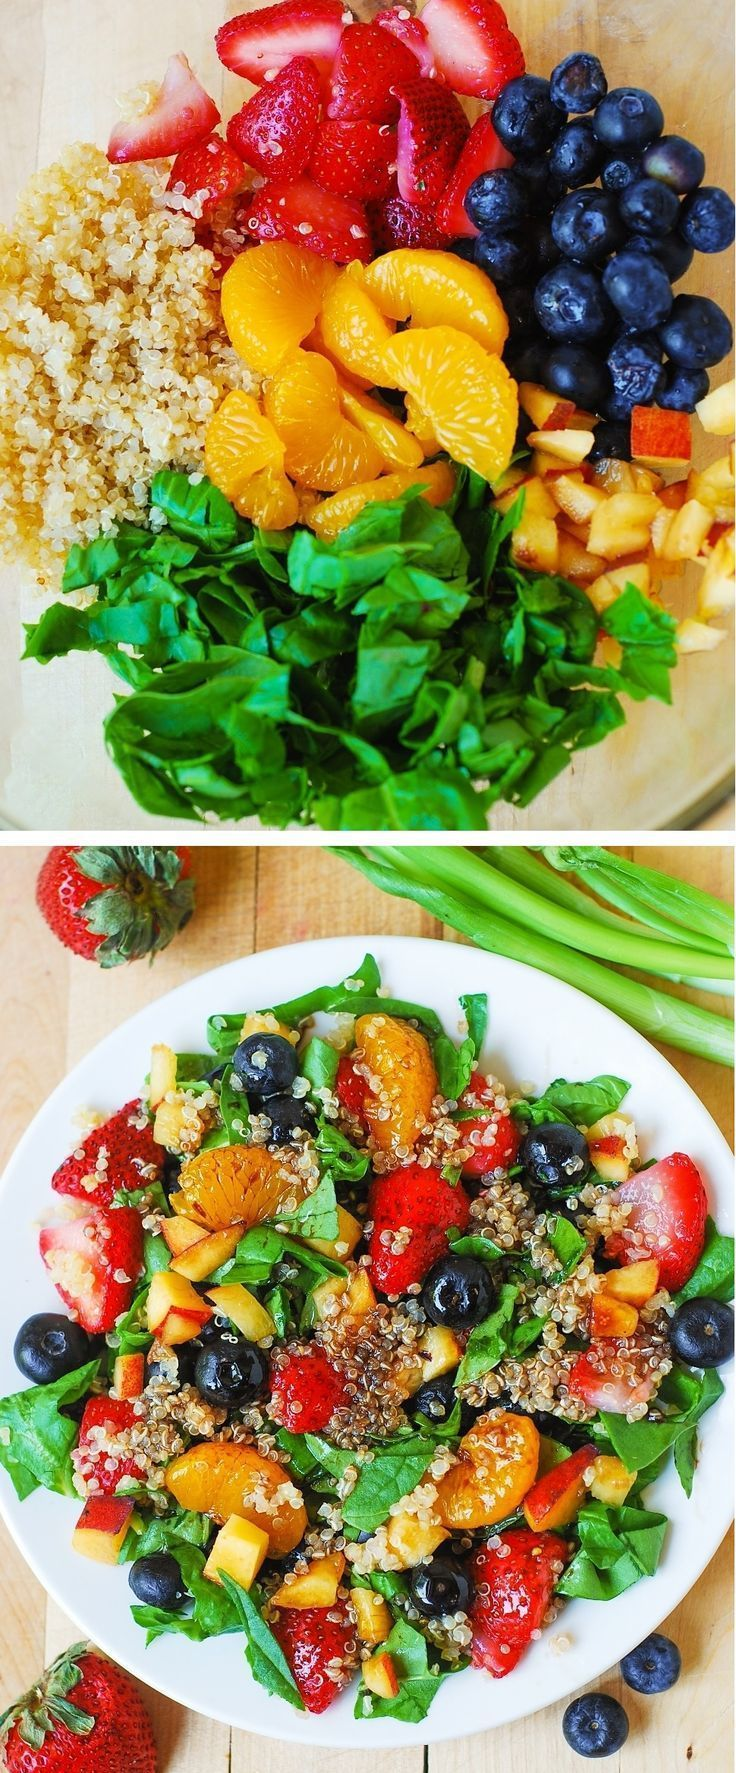 Quinoa Salad with Spinach, Strawberries, and Blueberries - Julia's Album